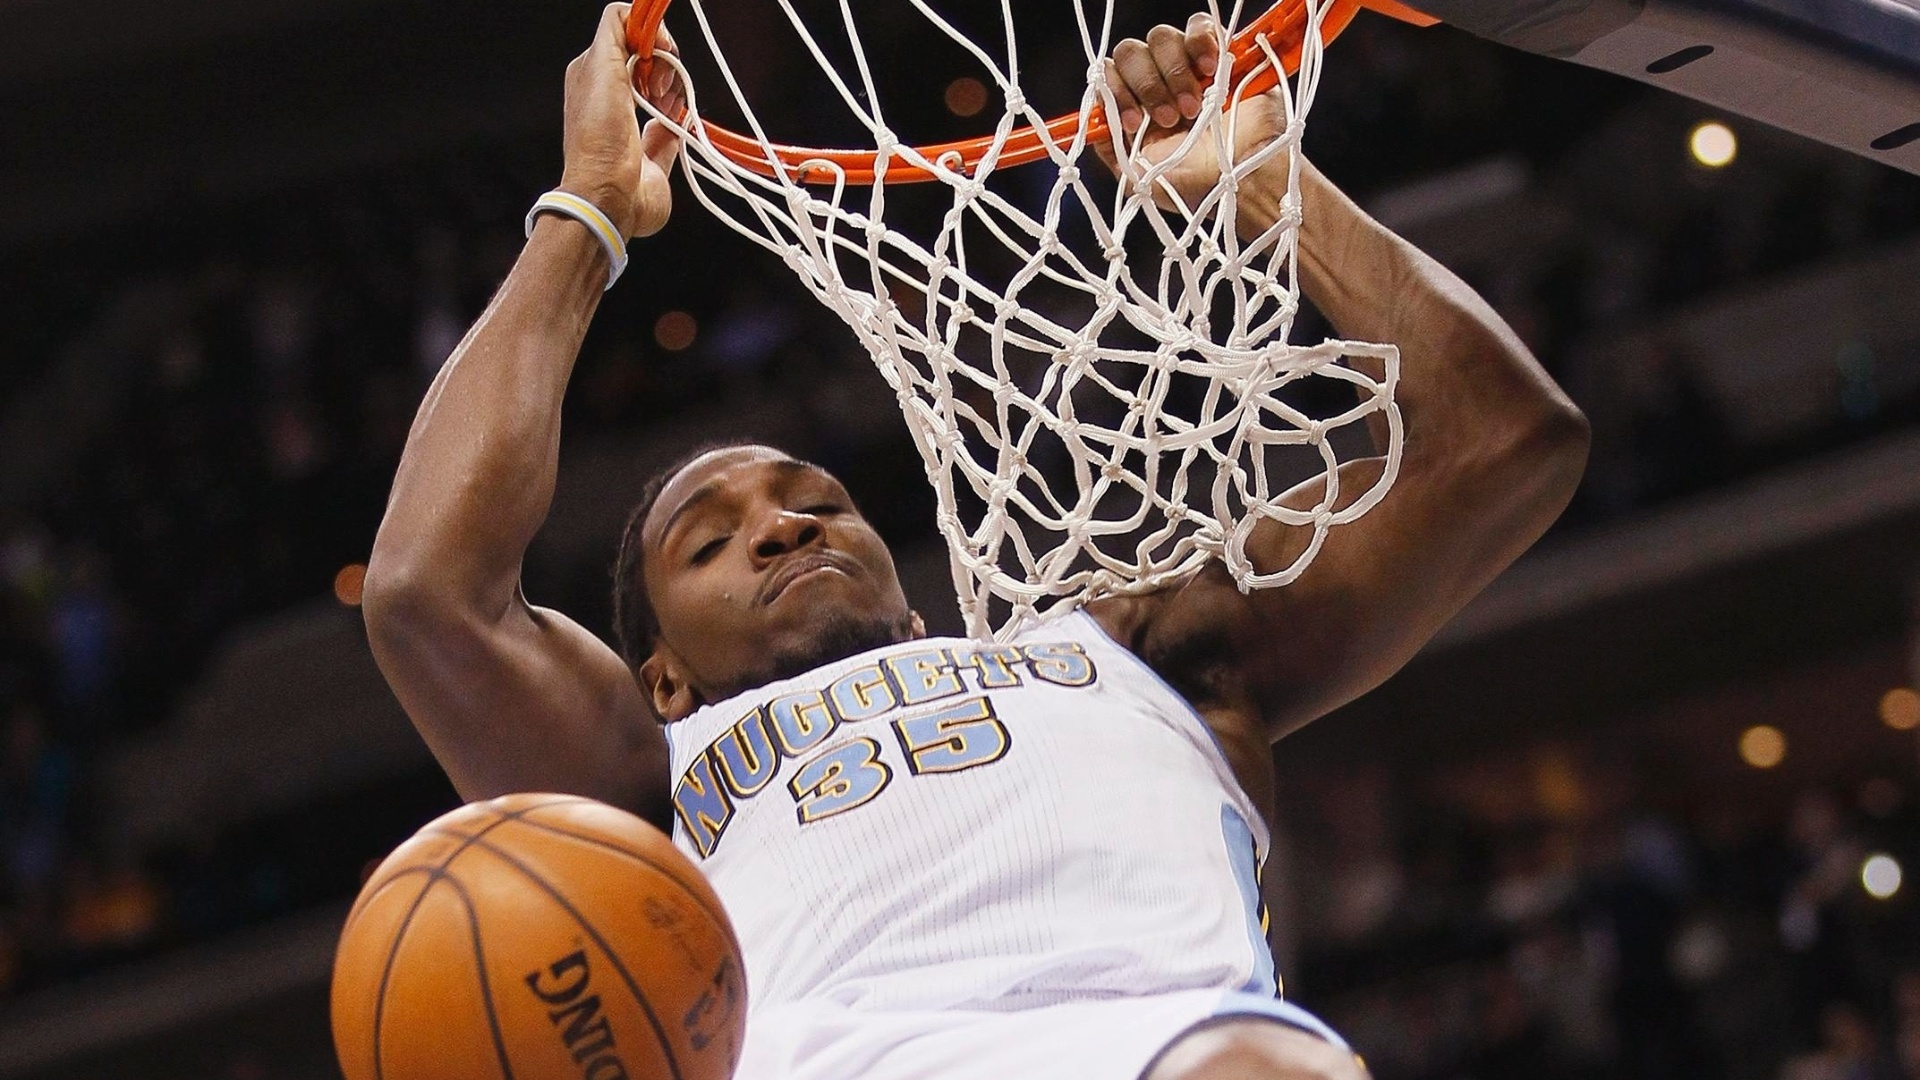 29.jan.2013 - Kenneth Faried converte enterrada para o Denver Nuggets na vitória sobre o Indiana Pacers